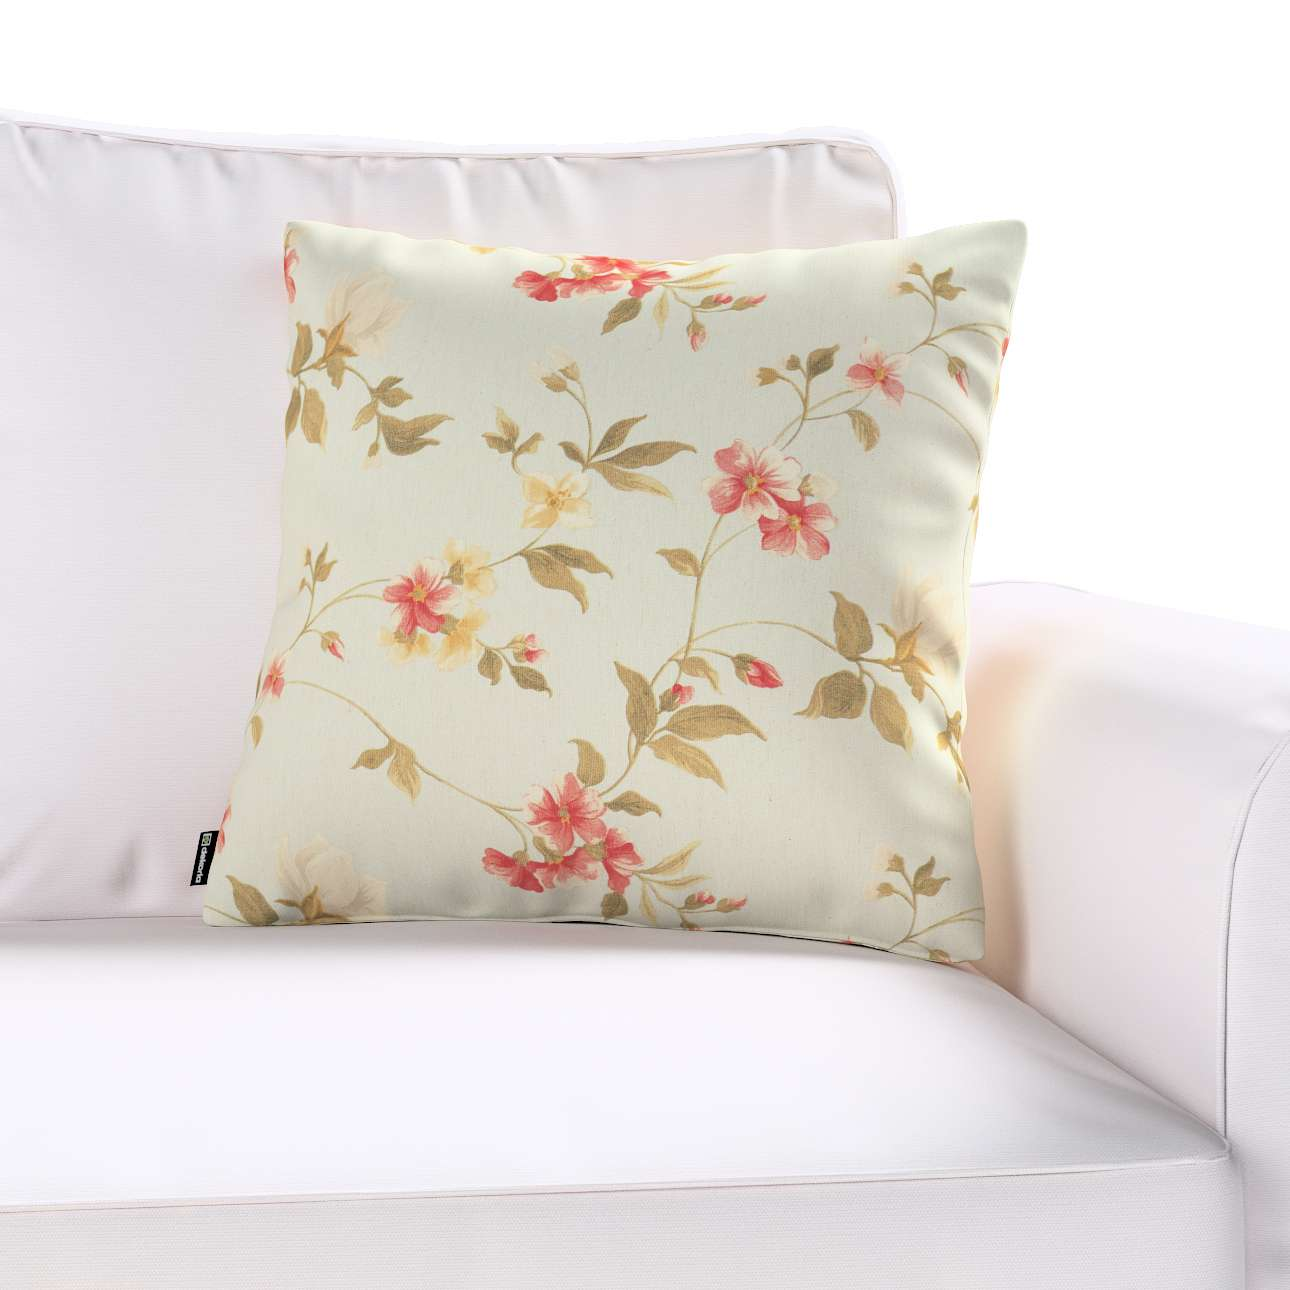 Kinga cushion cover in collection Londres, fabric: 124-65